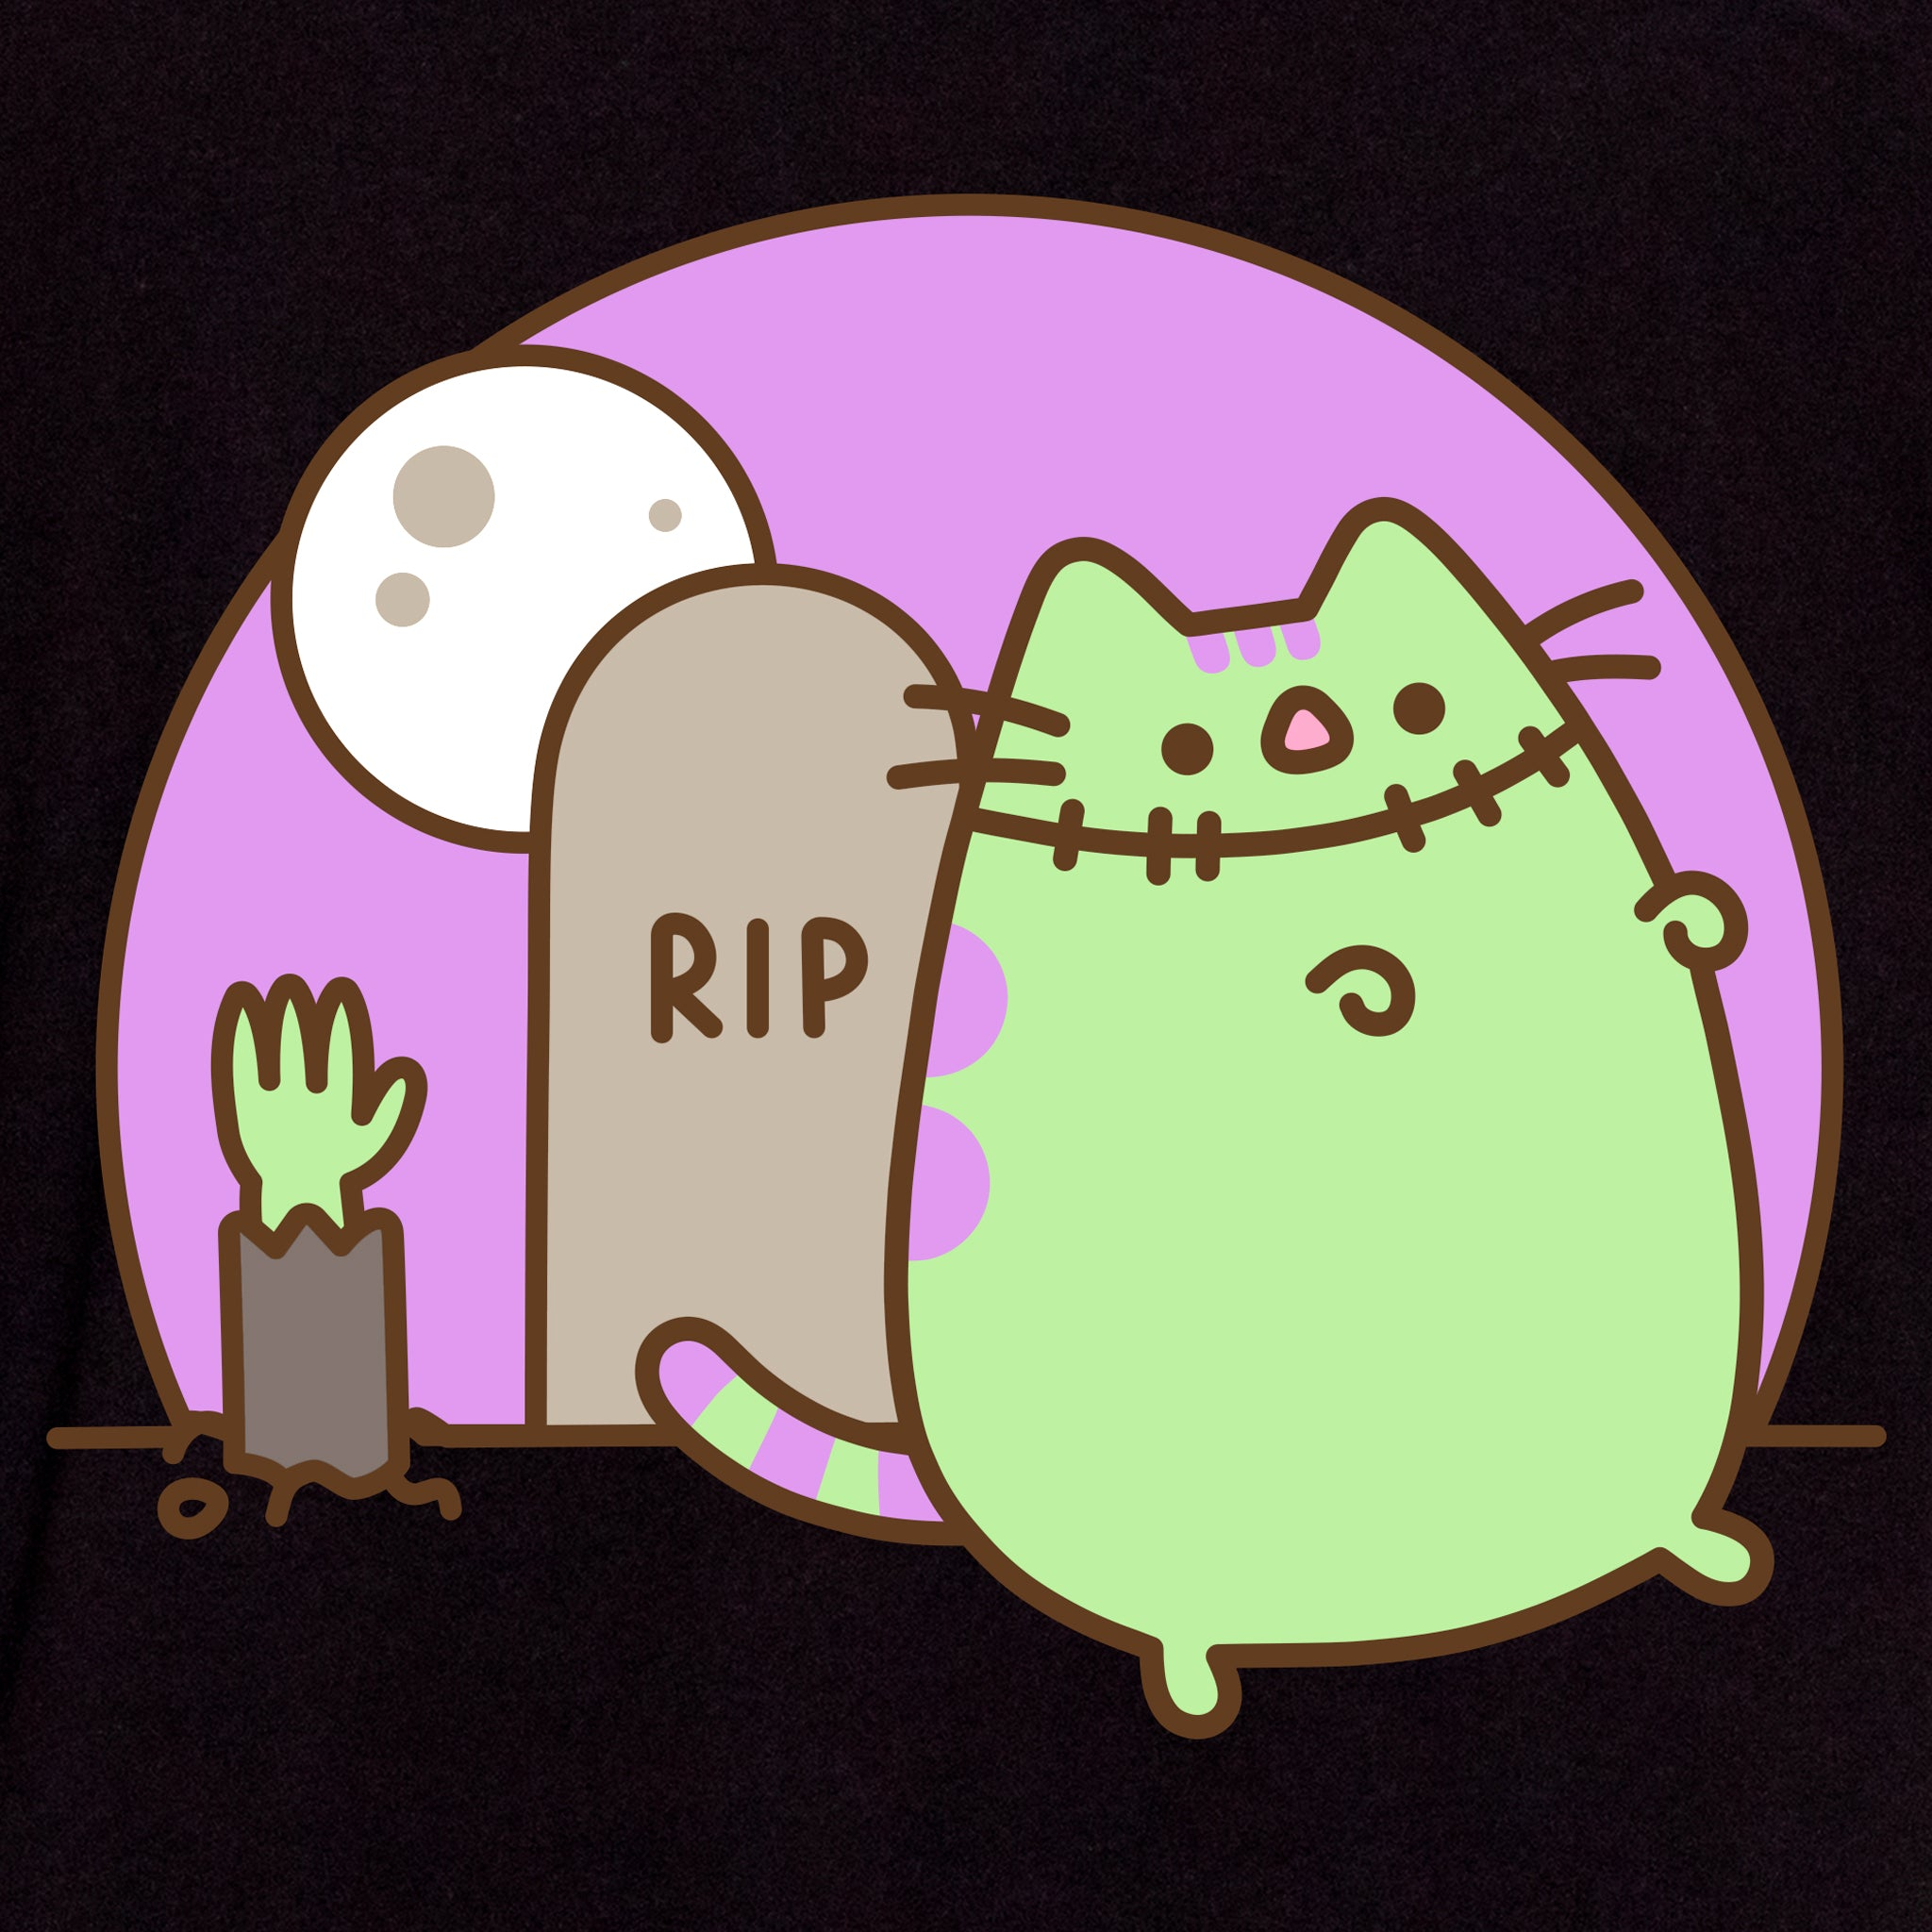 pusheen frankenpusheen zombie monster spooky halloween spoopy apparel t-shirt graphic shirt cute cat culturefly